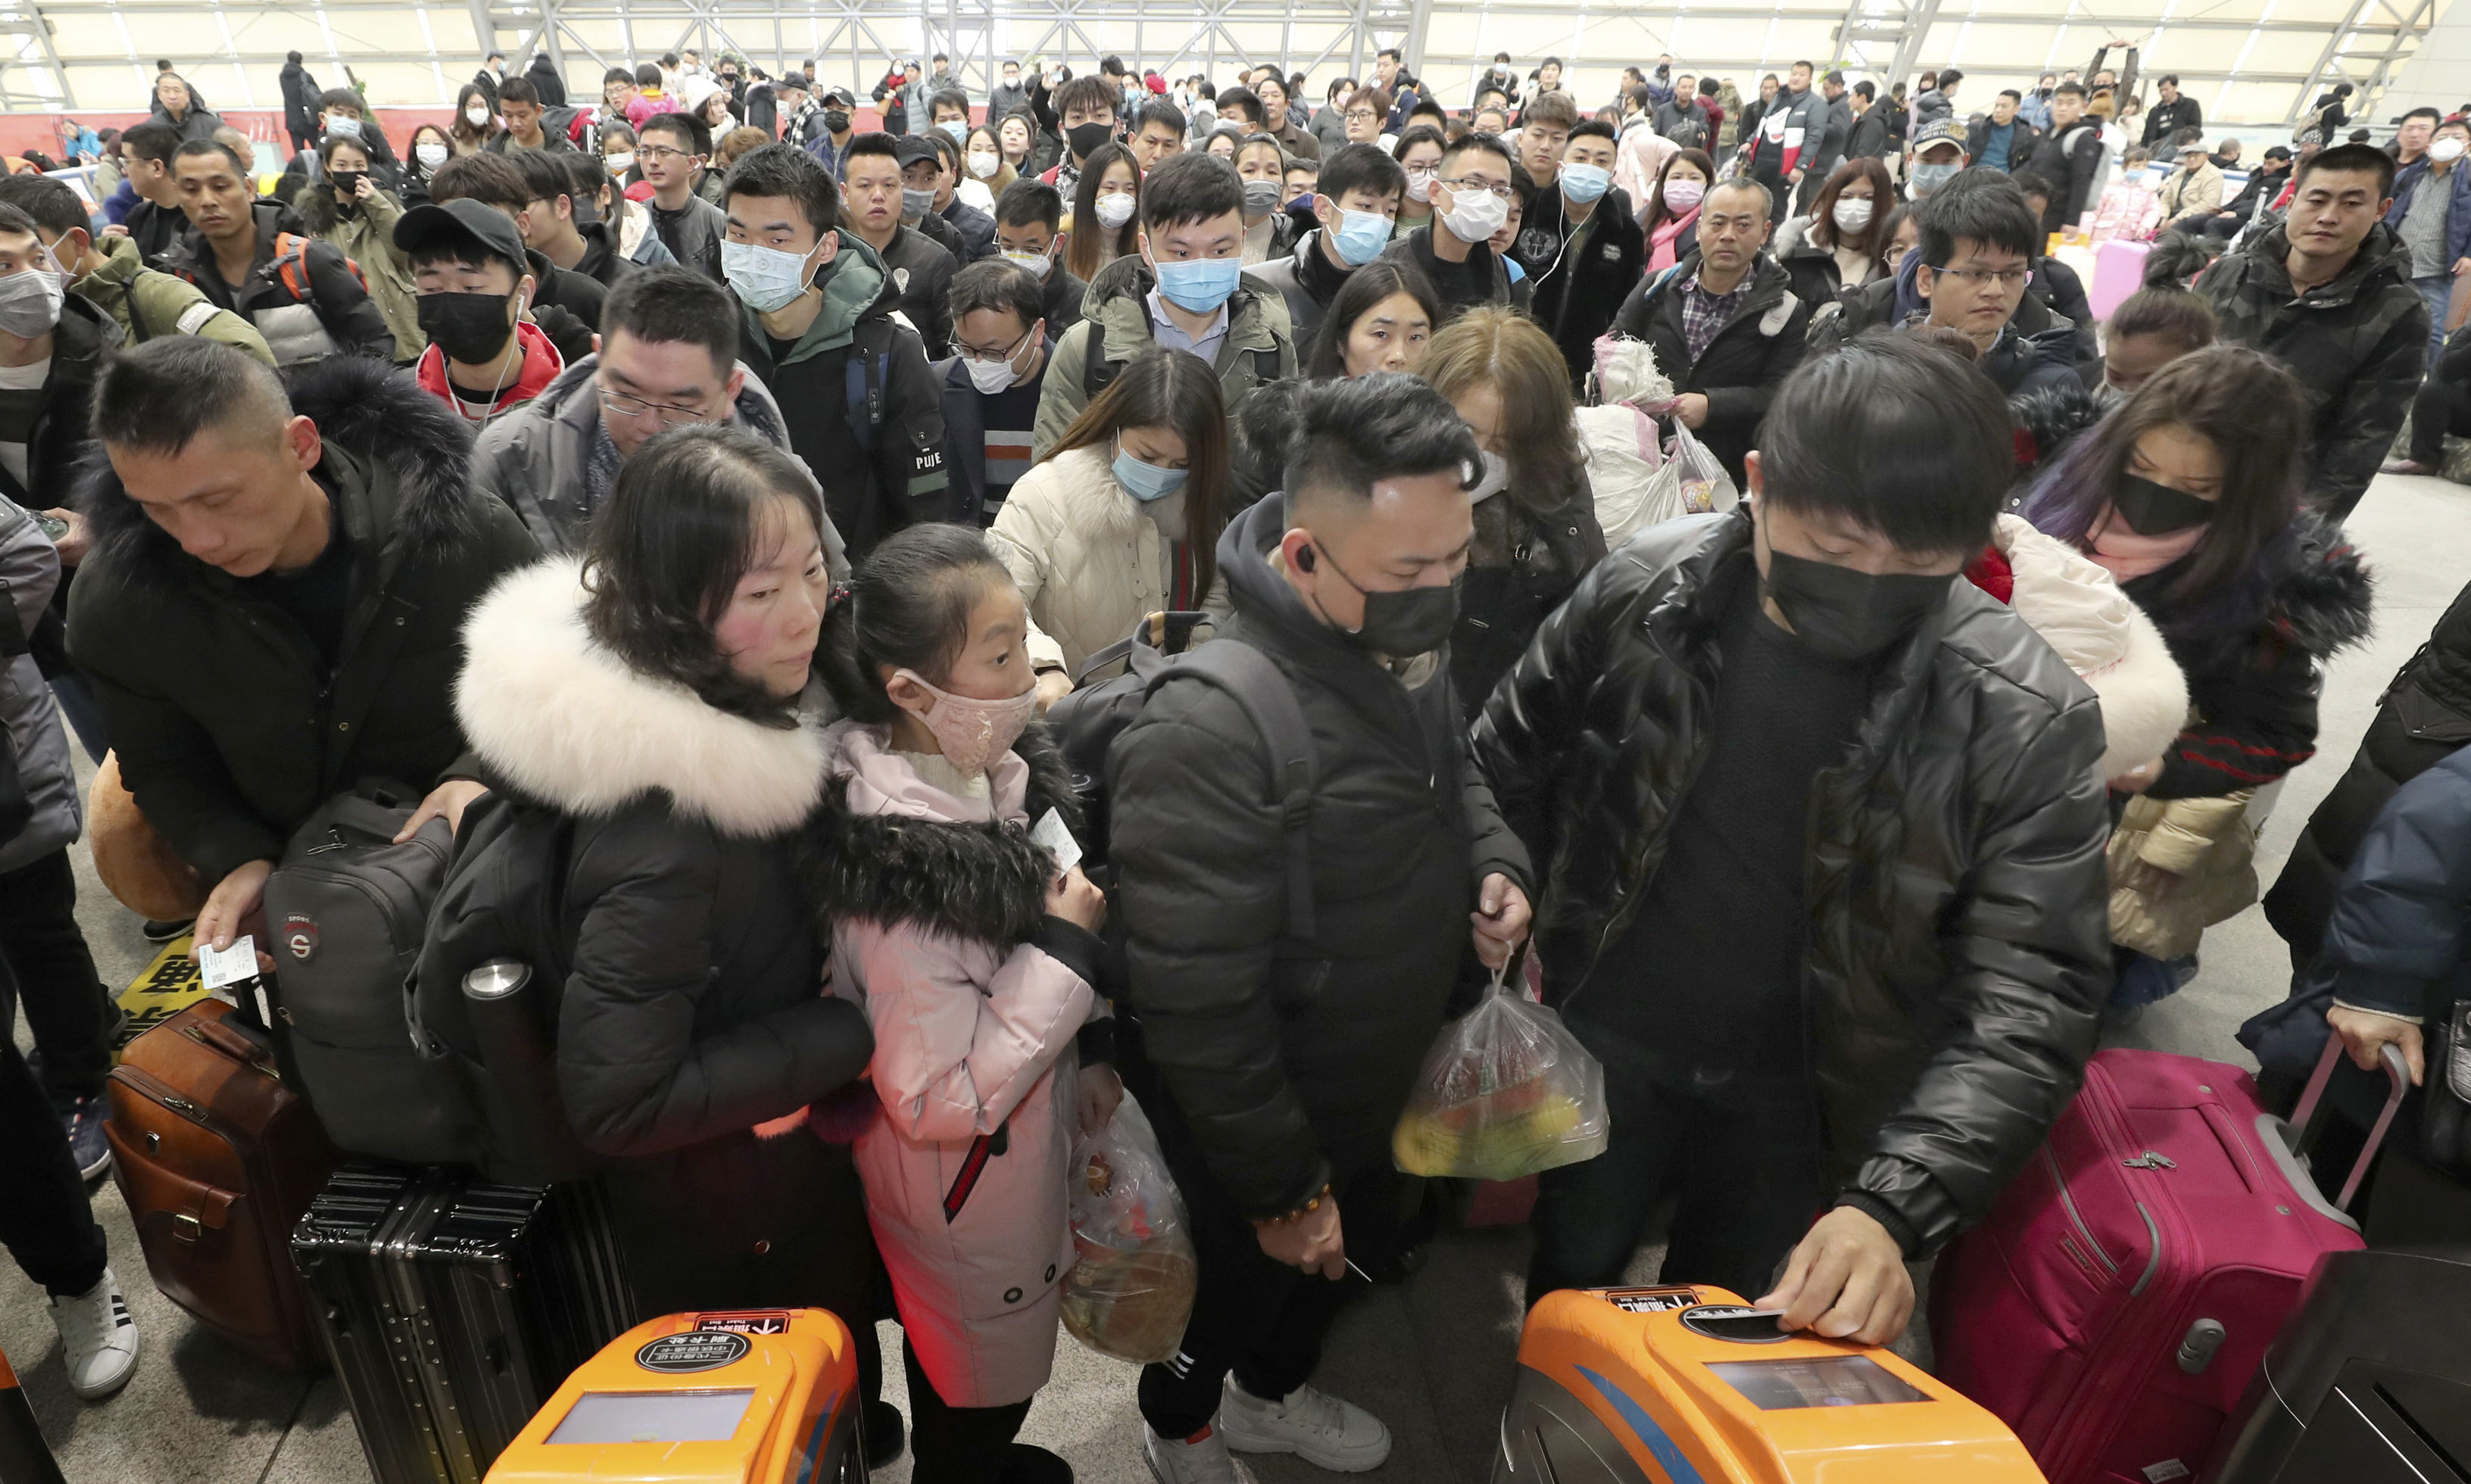 Travellers wear face masks as they line up at turnstiles at a train station in Nantong, eastern China